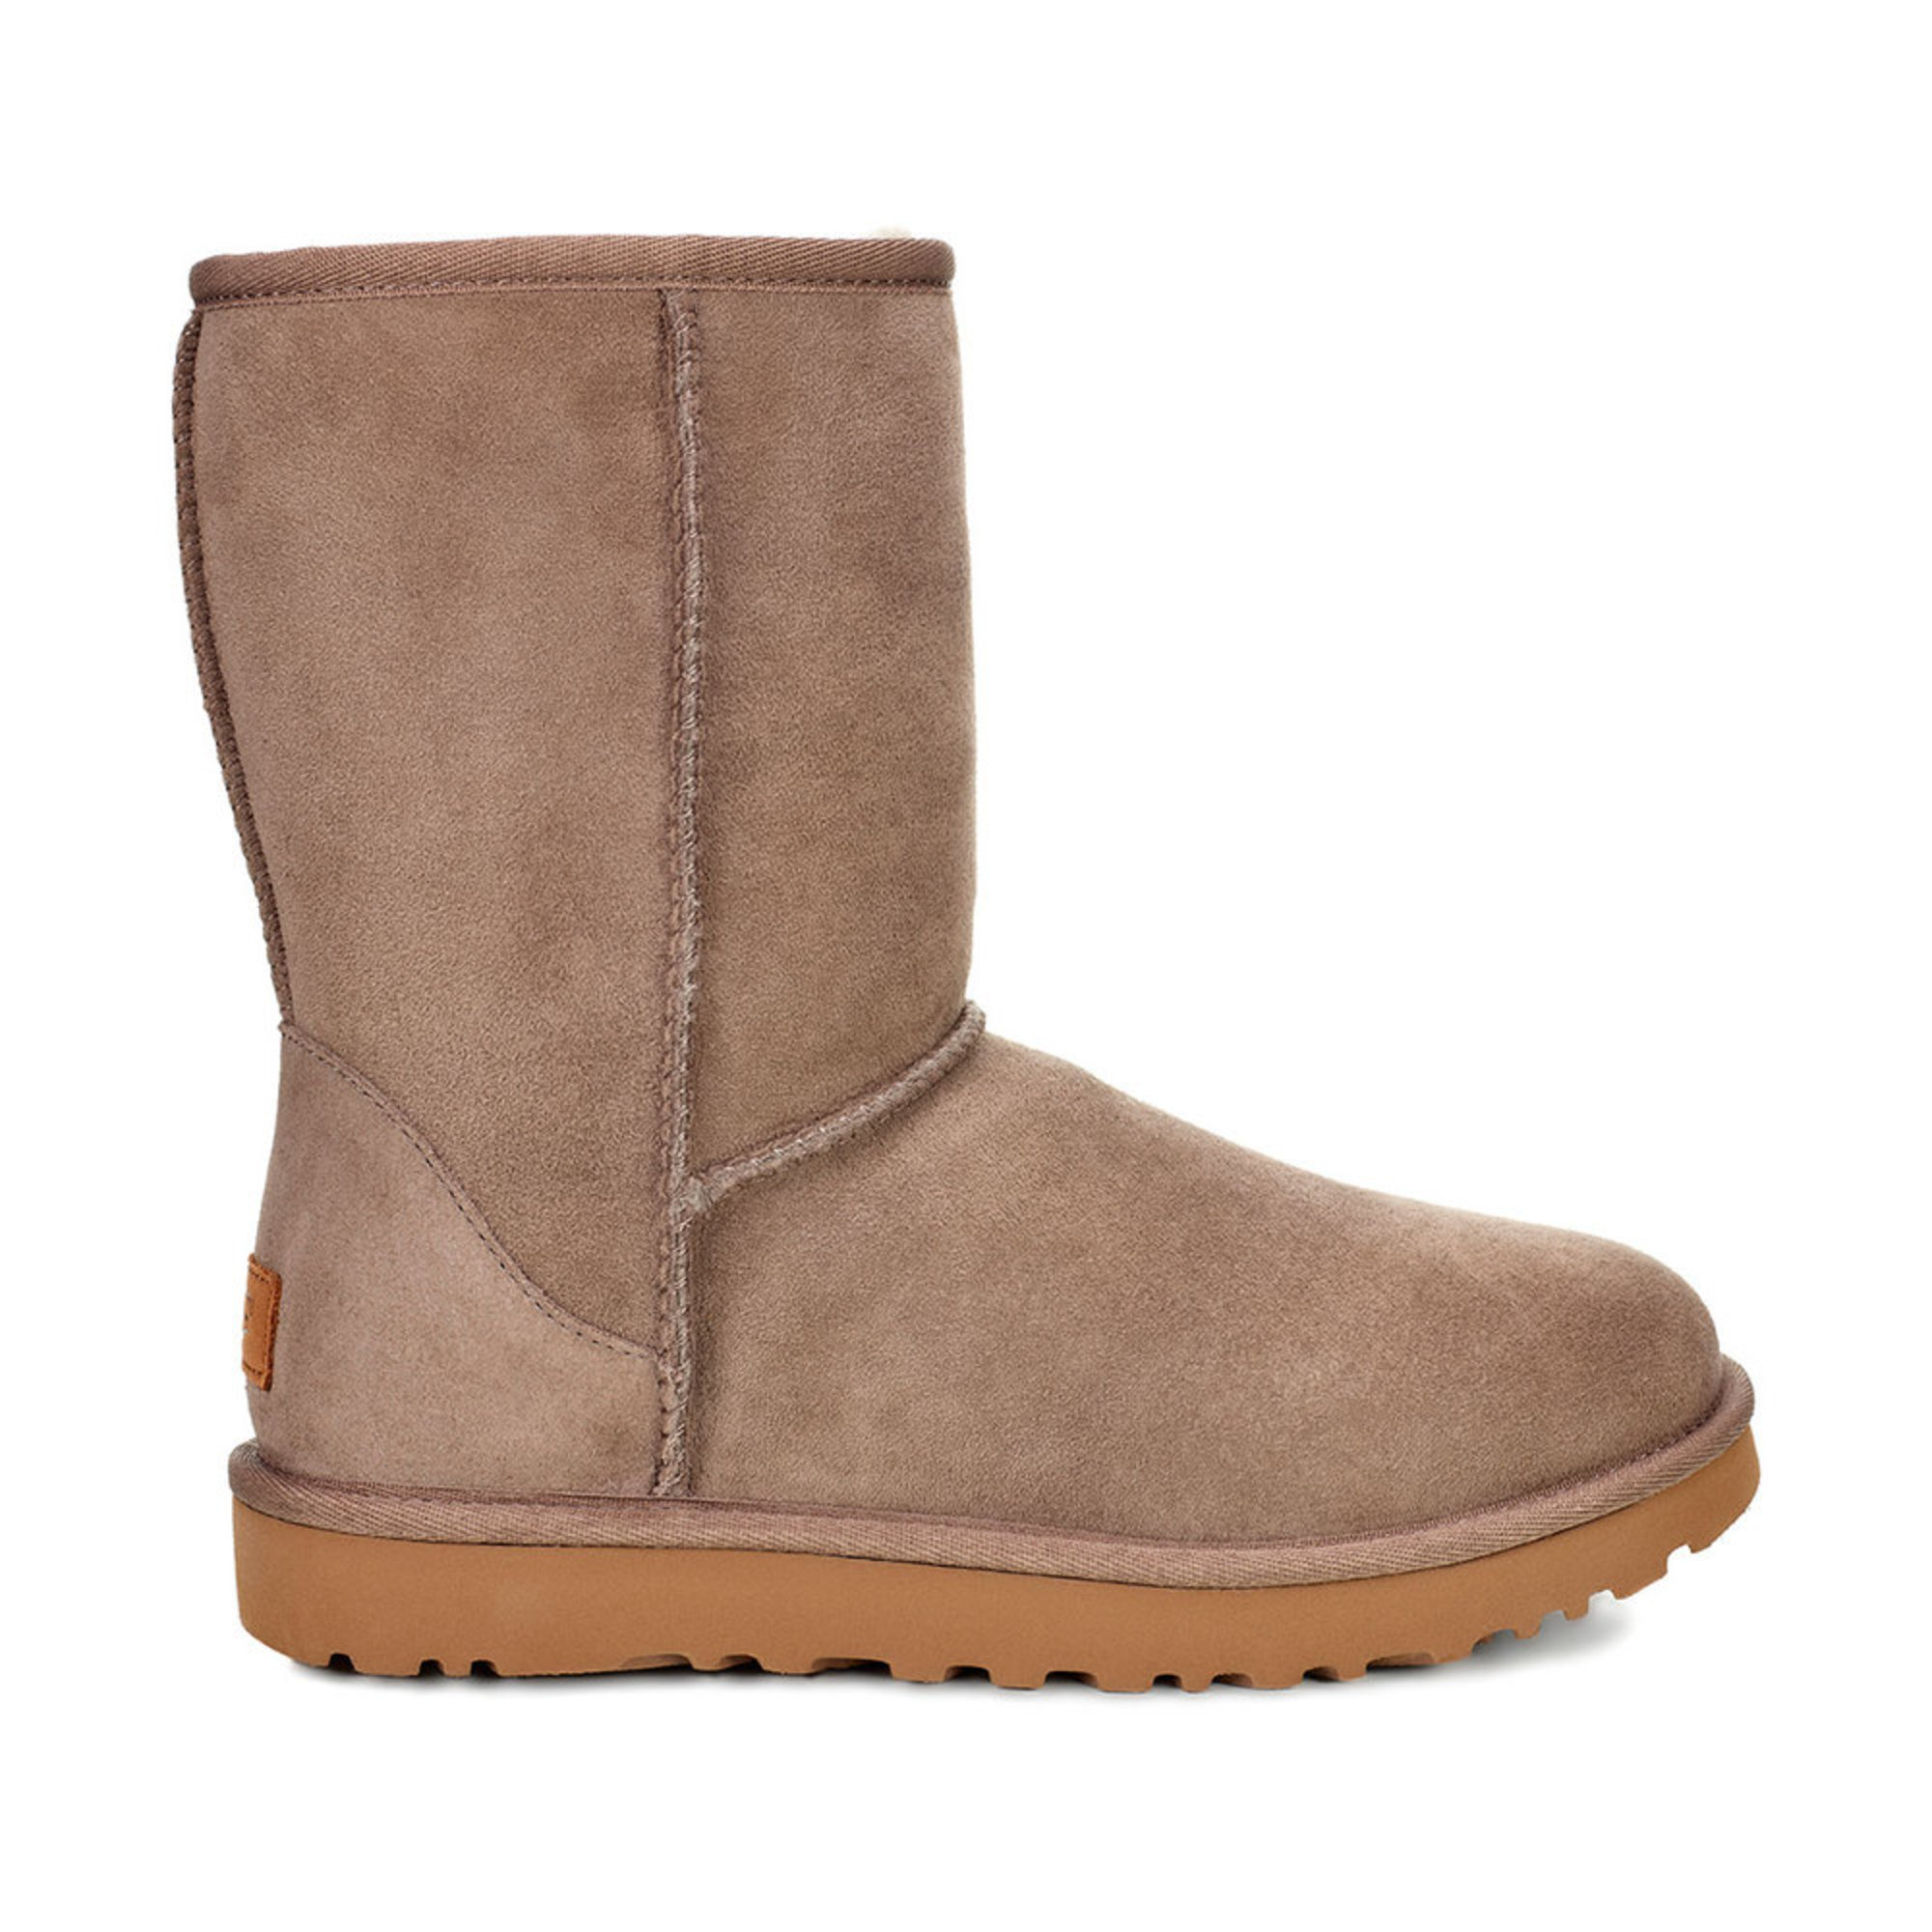 f4331f8672f ... coupon code for ugg classic short ii womens short casual boot brindle  d1ab2 8199d